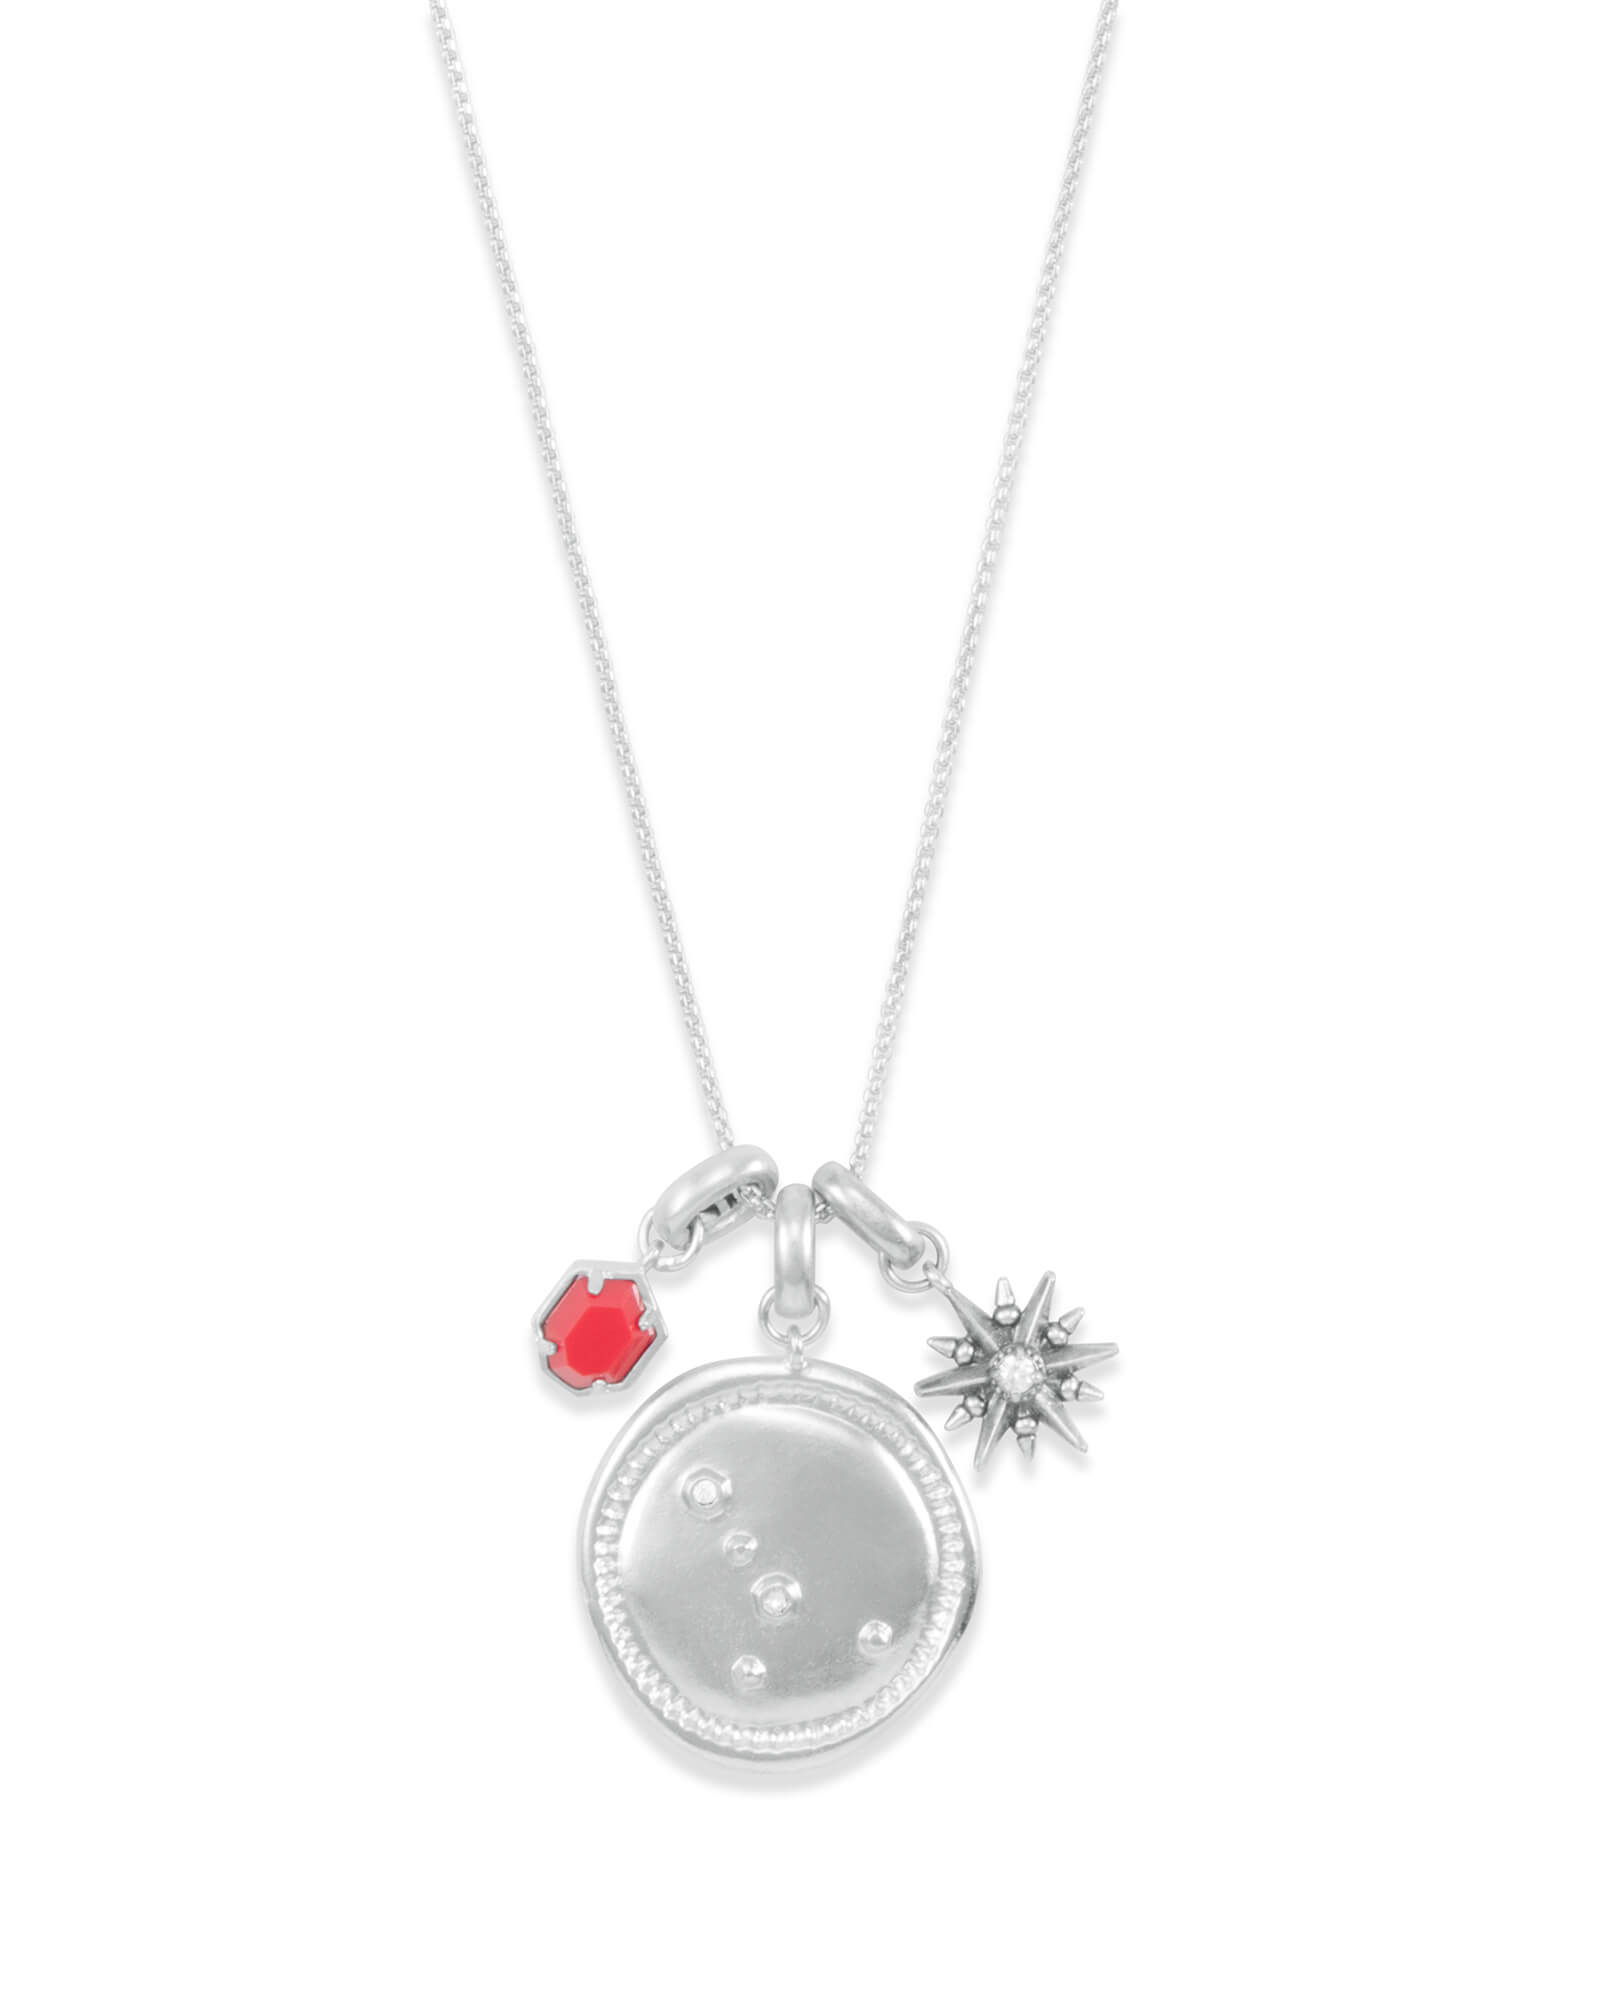 July Cancer Charm Necklace Set in Silver